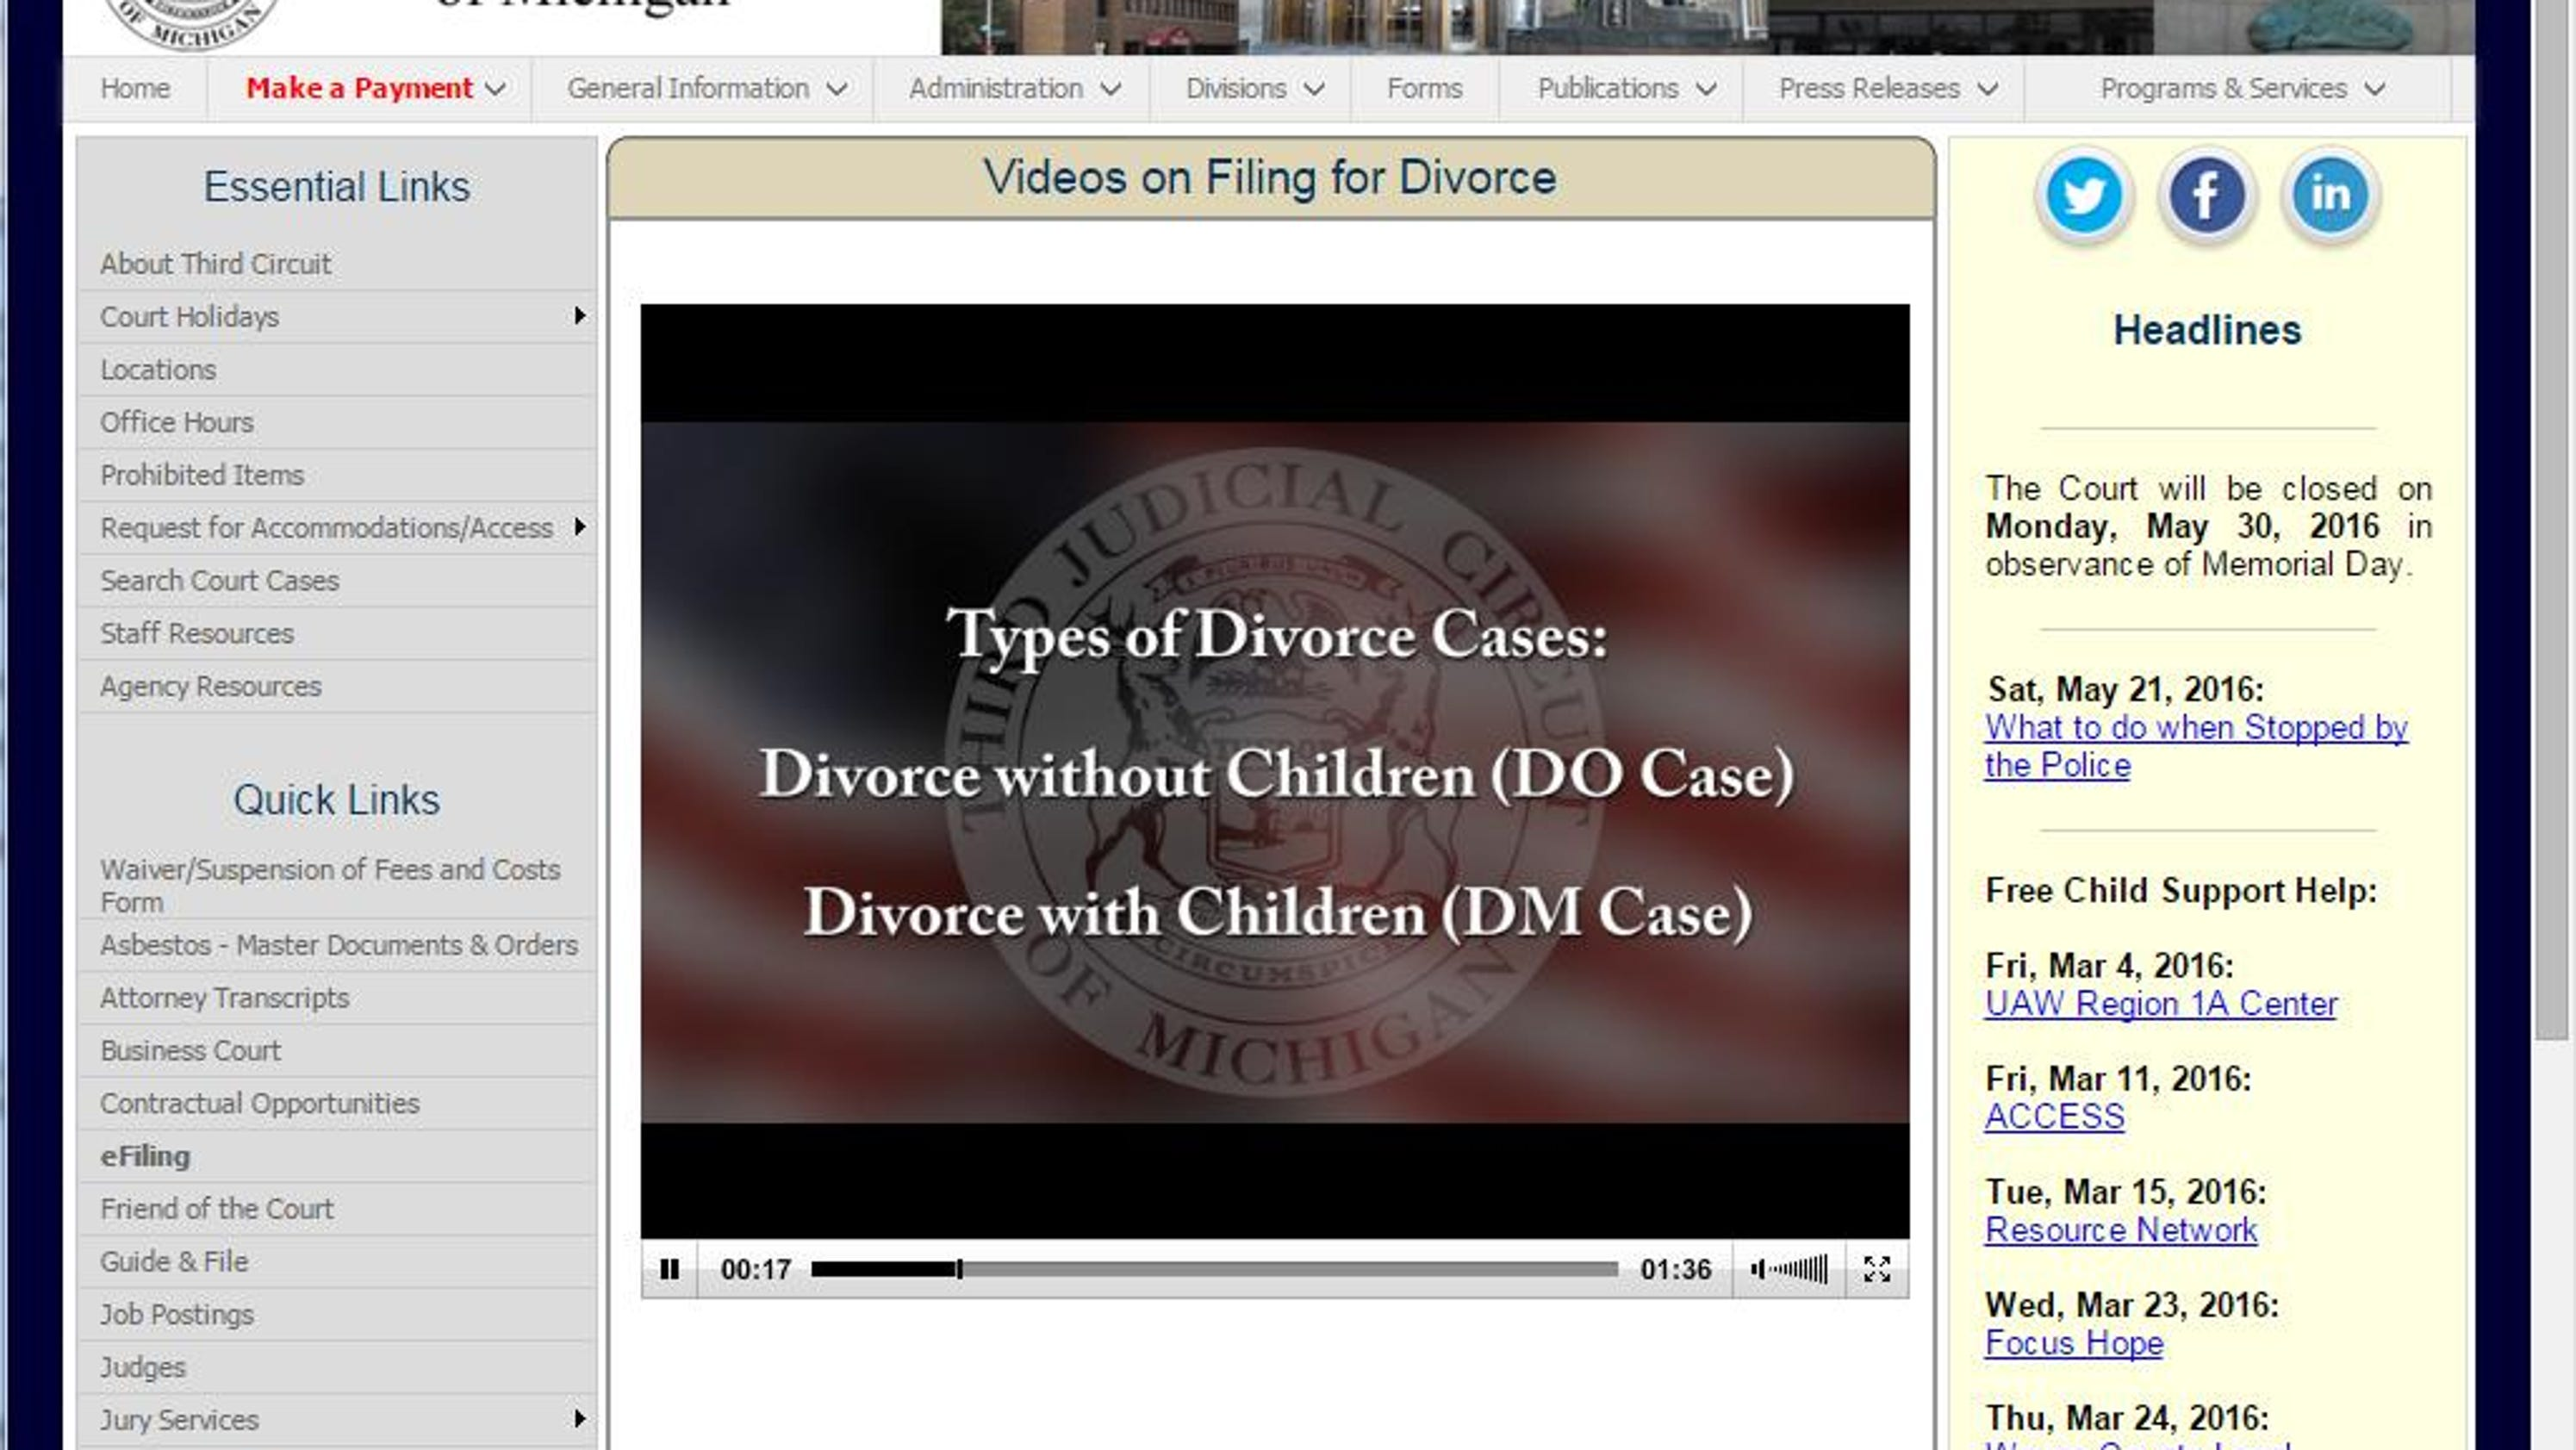 Wayne court video takes mystery out of filing for divorce solutioingenieria Choice Image